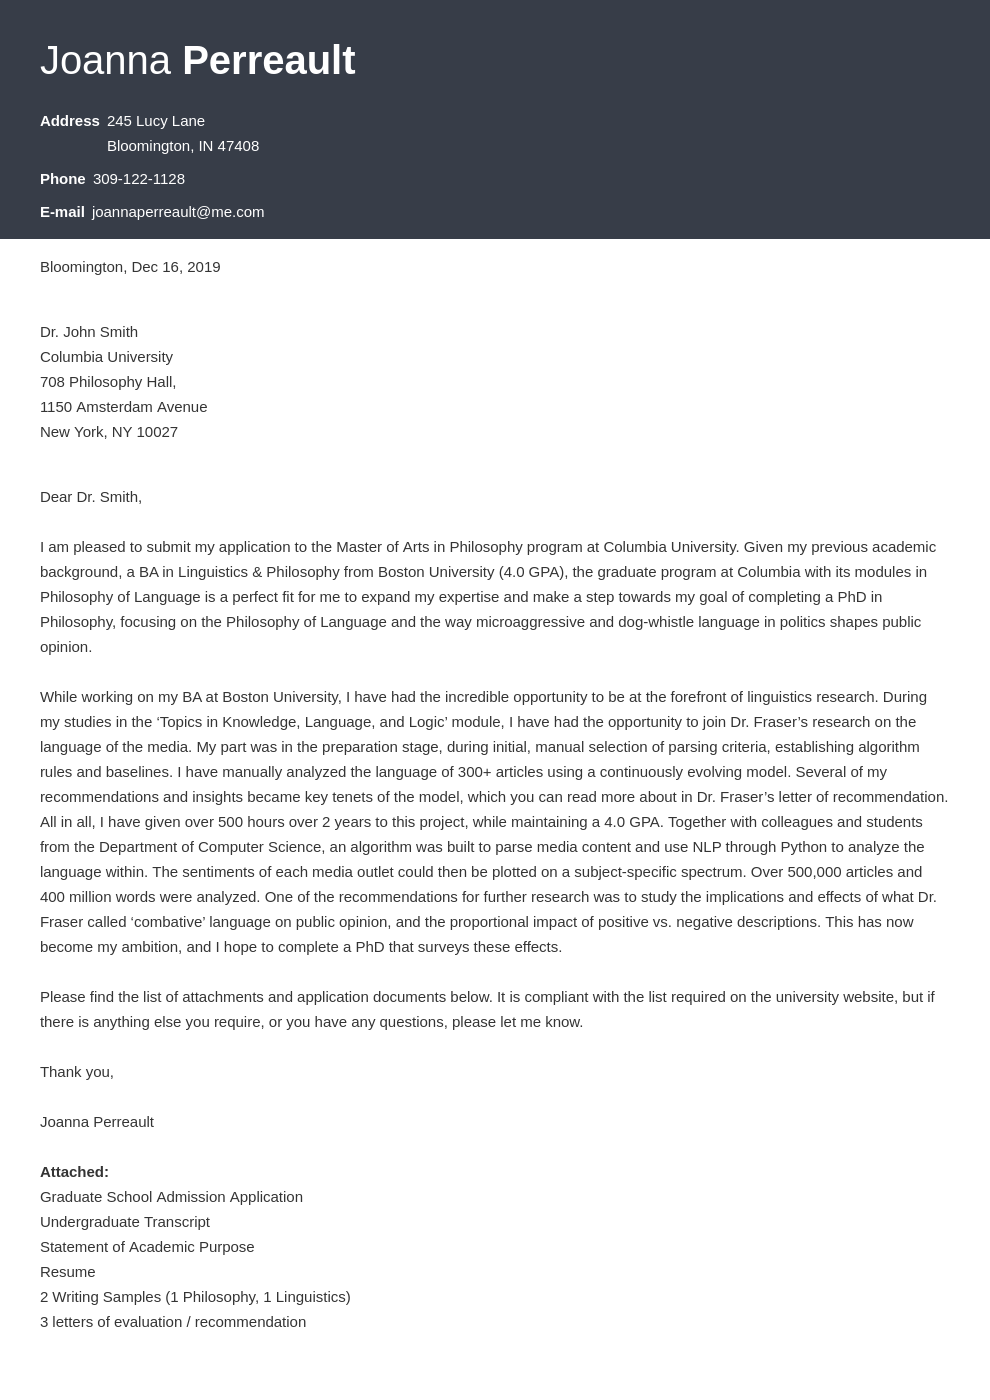 cover letter examples graduate school template influx uk